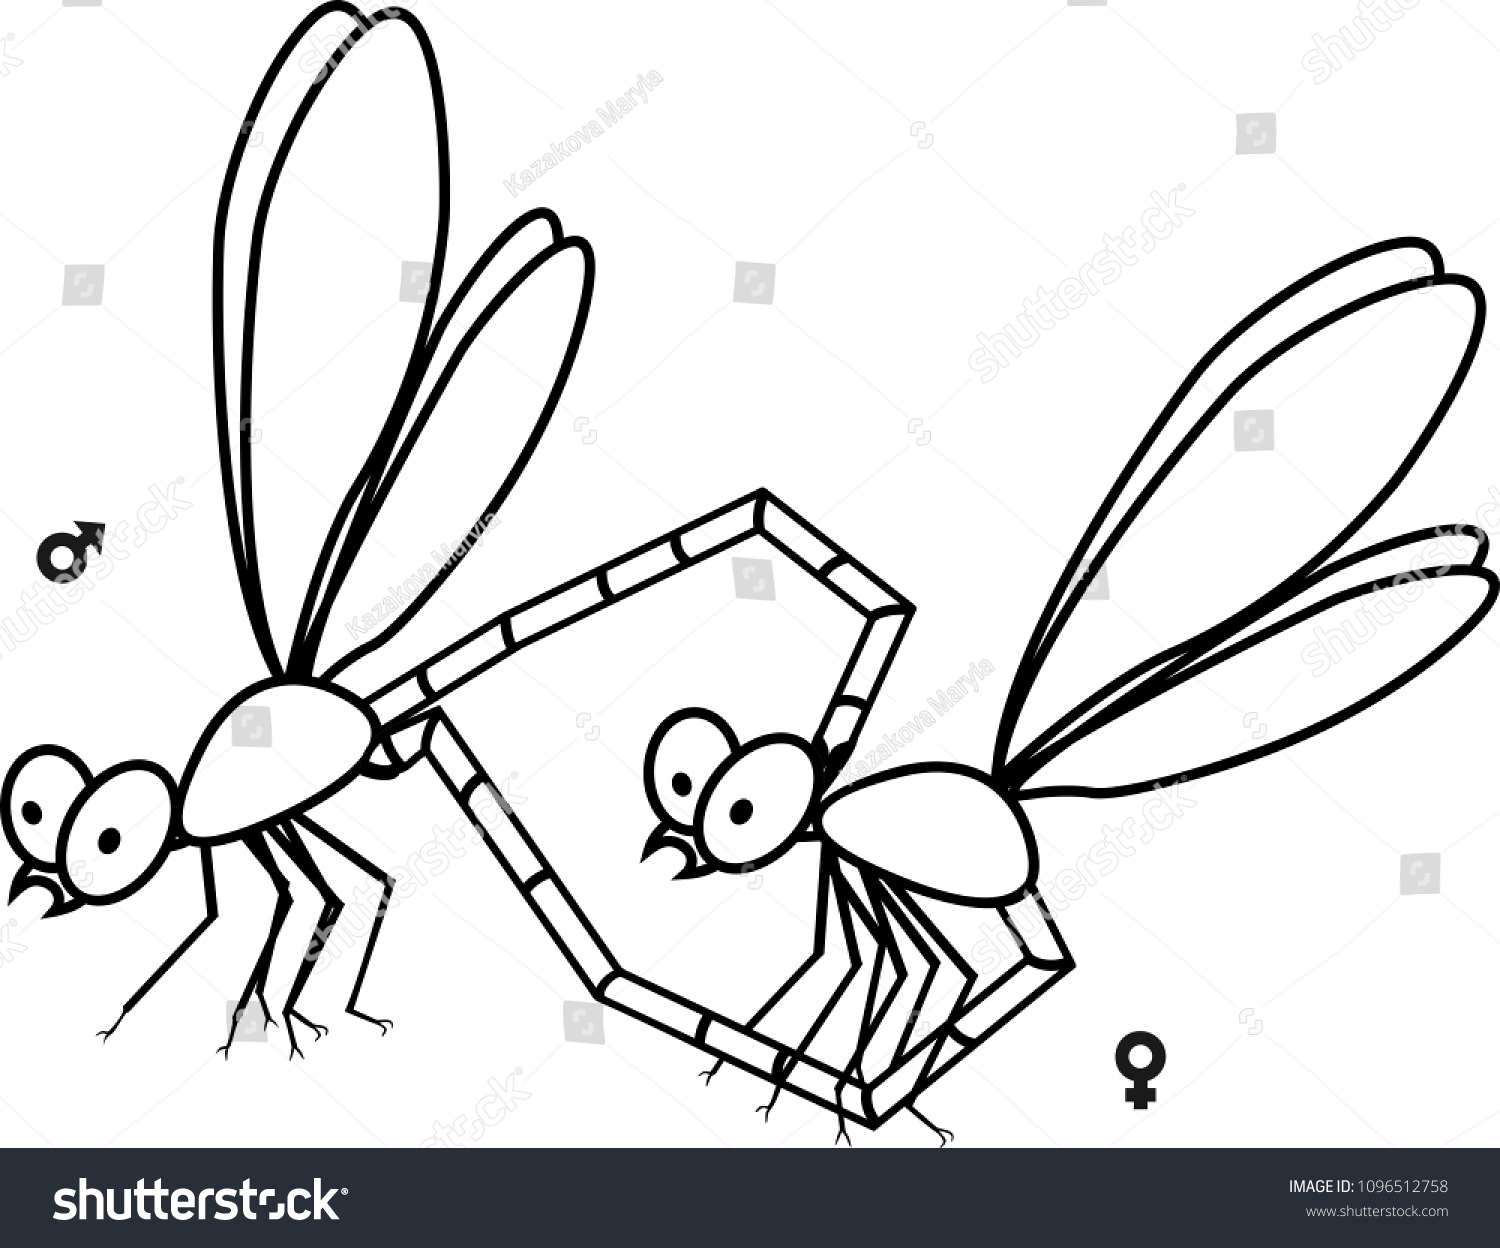 Mating Couple Dragonflies Coloring Page Stock Vector 1096512758 ...